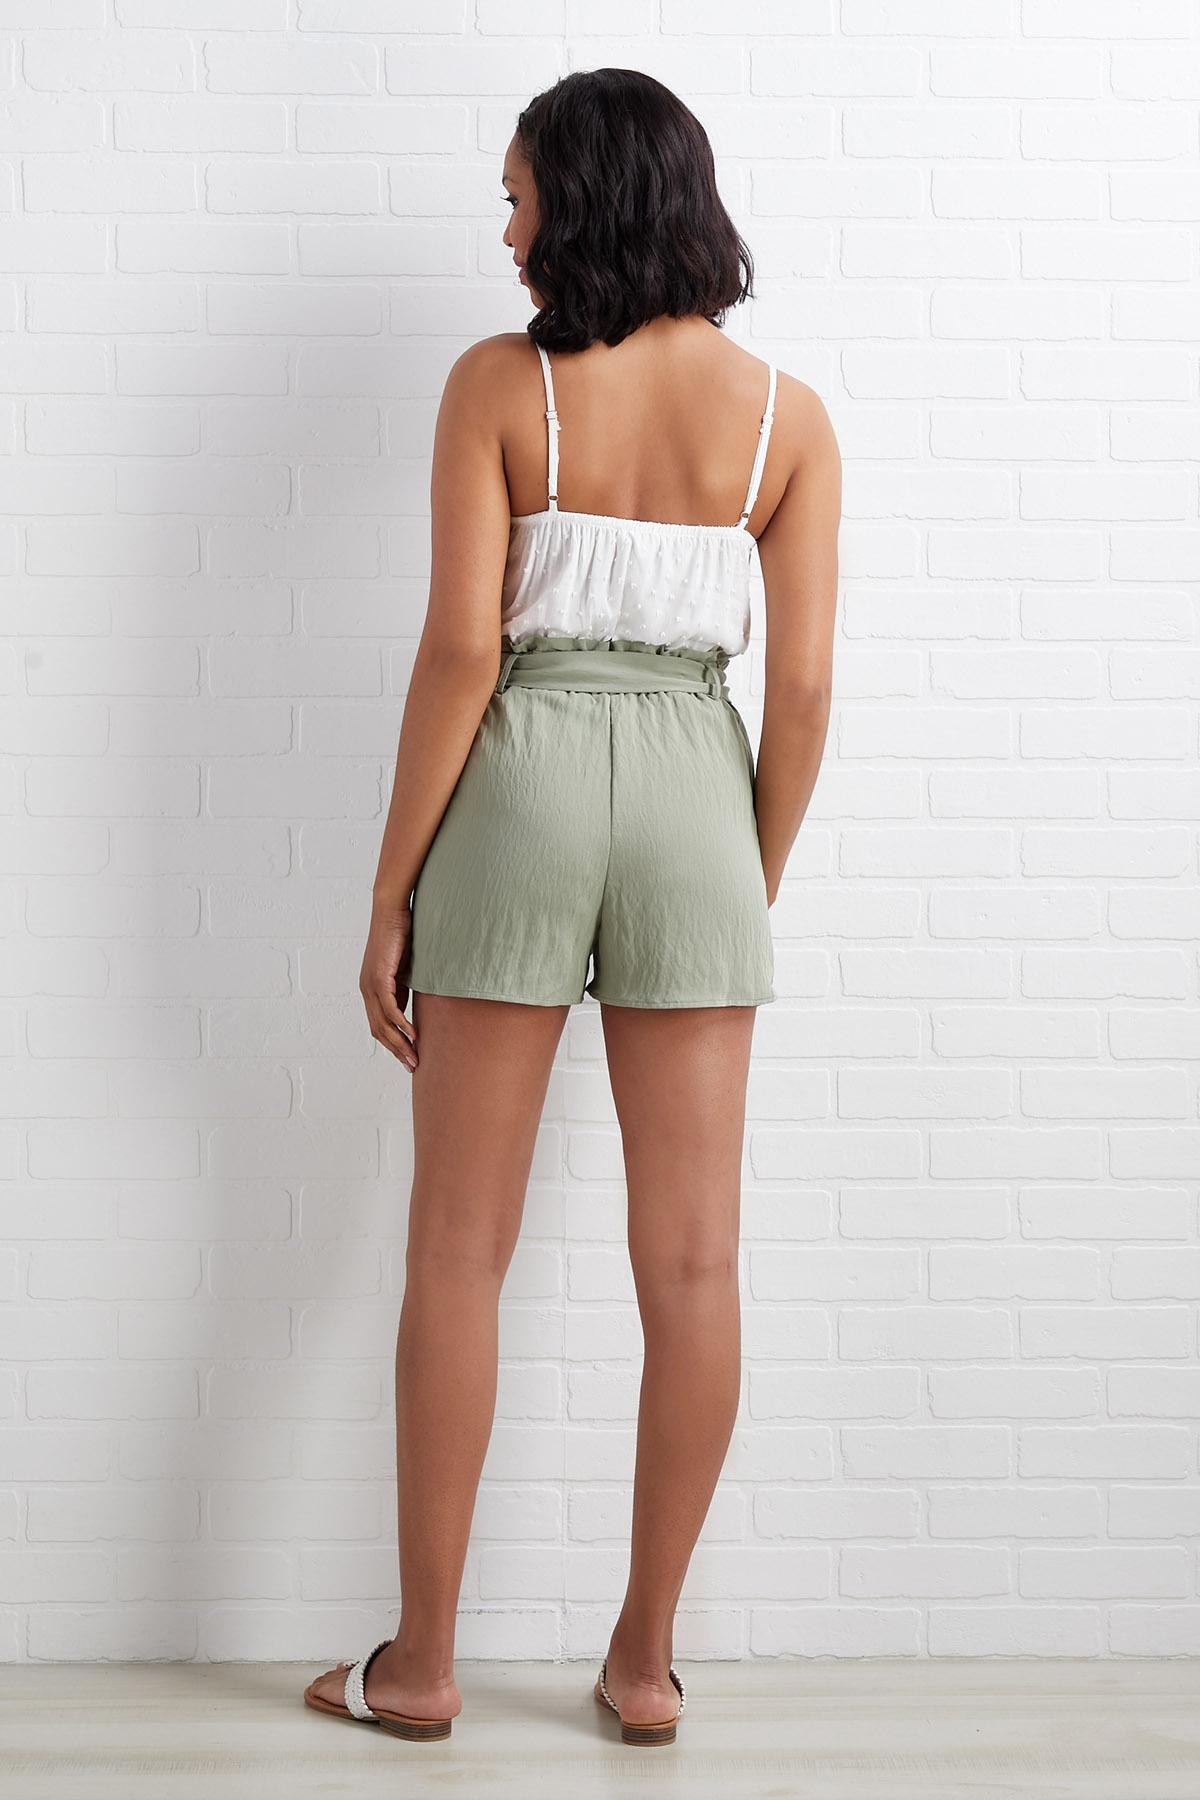 Two Is Better Than One Romper